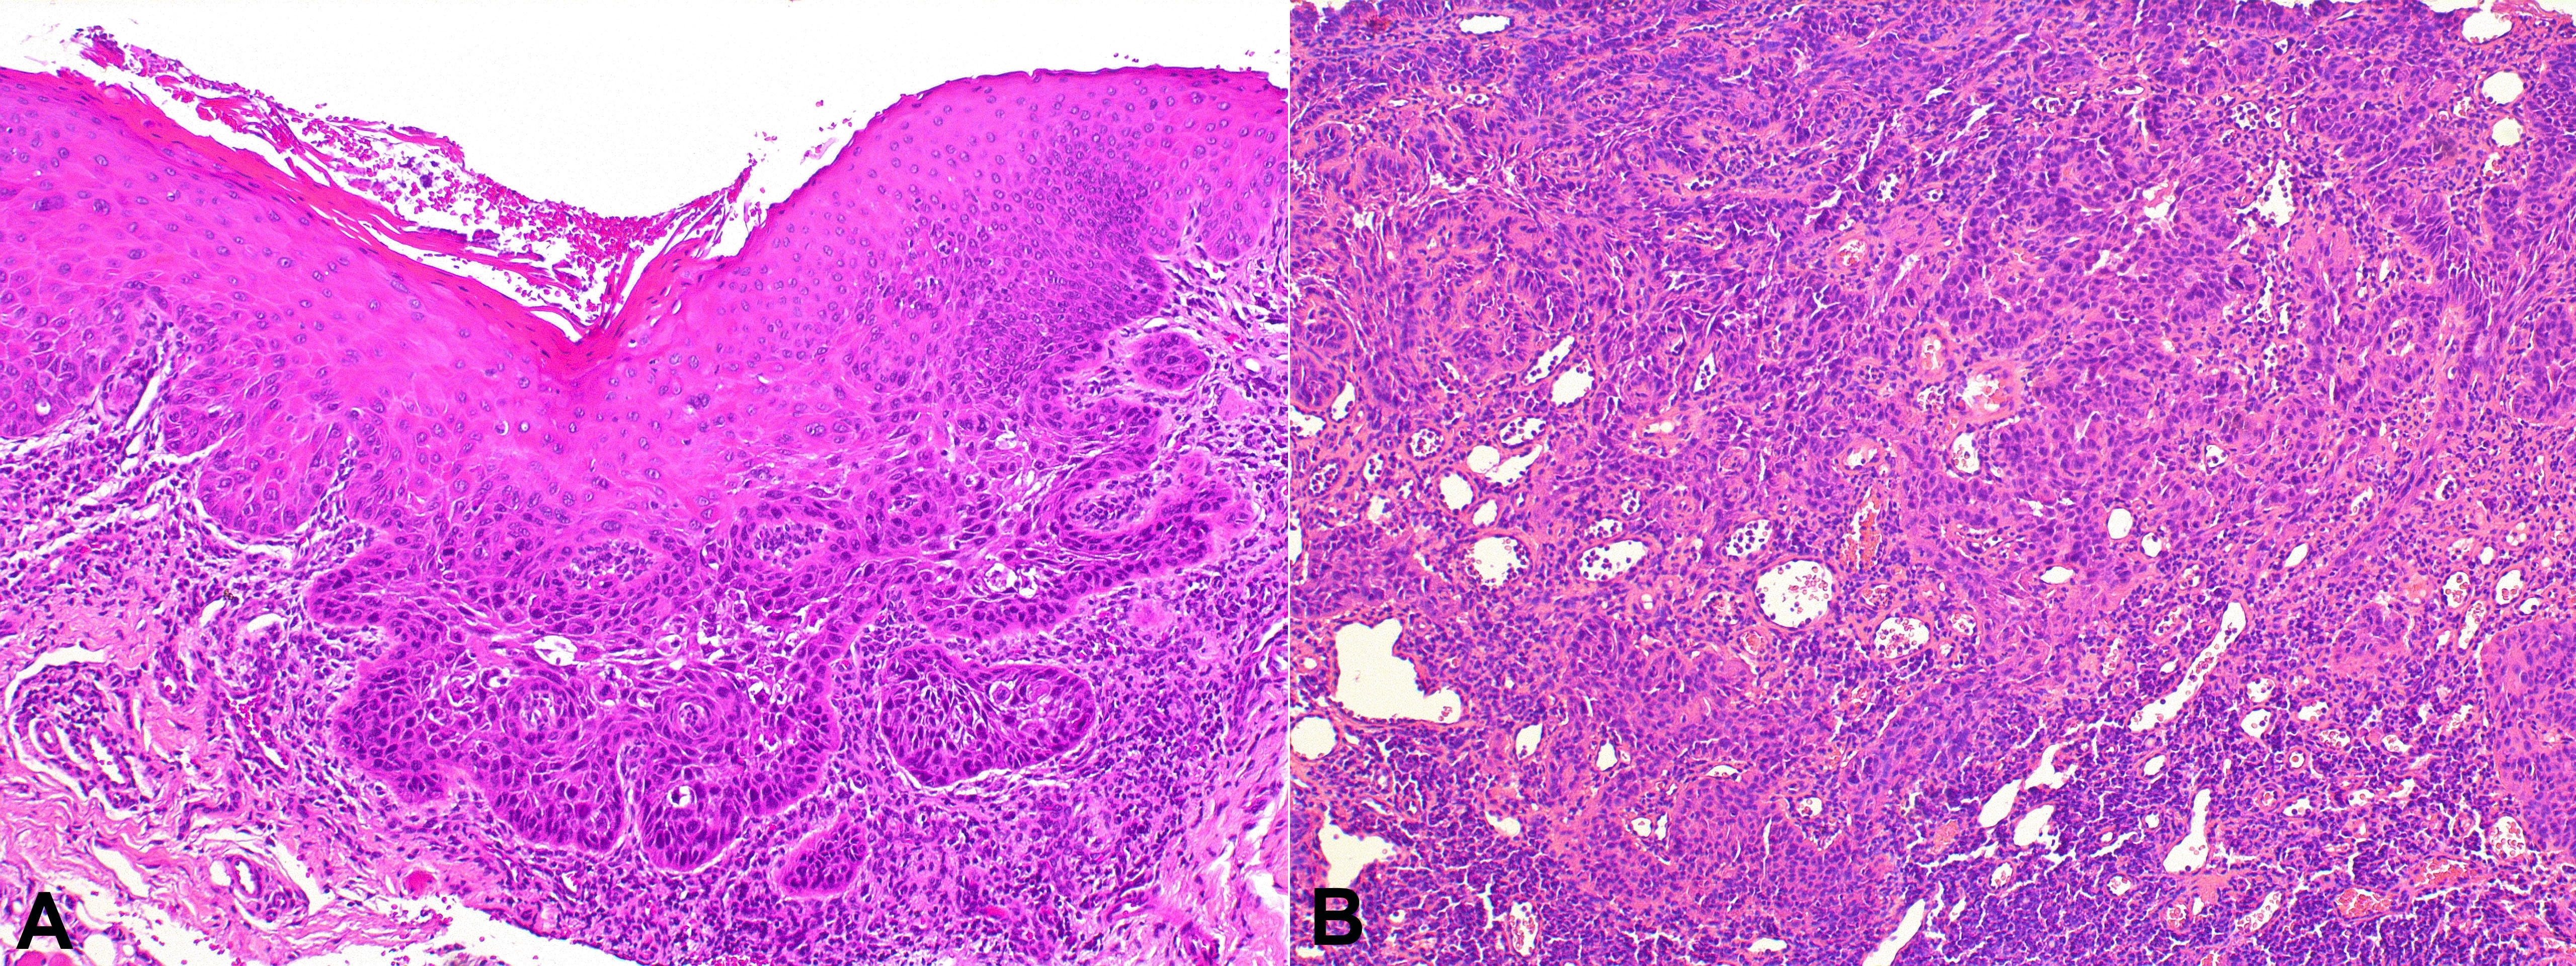 Histopathological aspects of squamous cell carcinoma. A - Microinvasive tumor of the tongue. B - Tumor cells in the connective tissue of the lower lip.